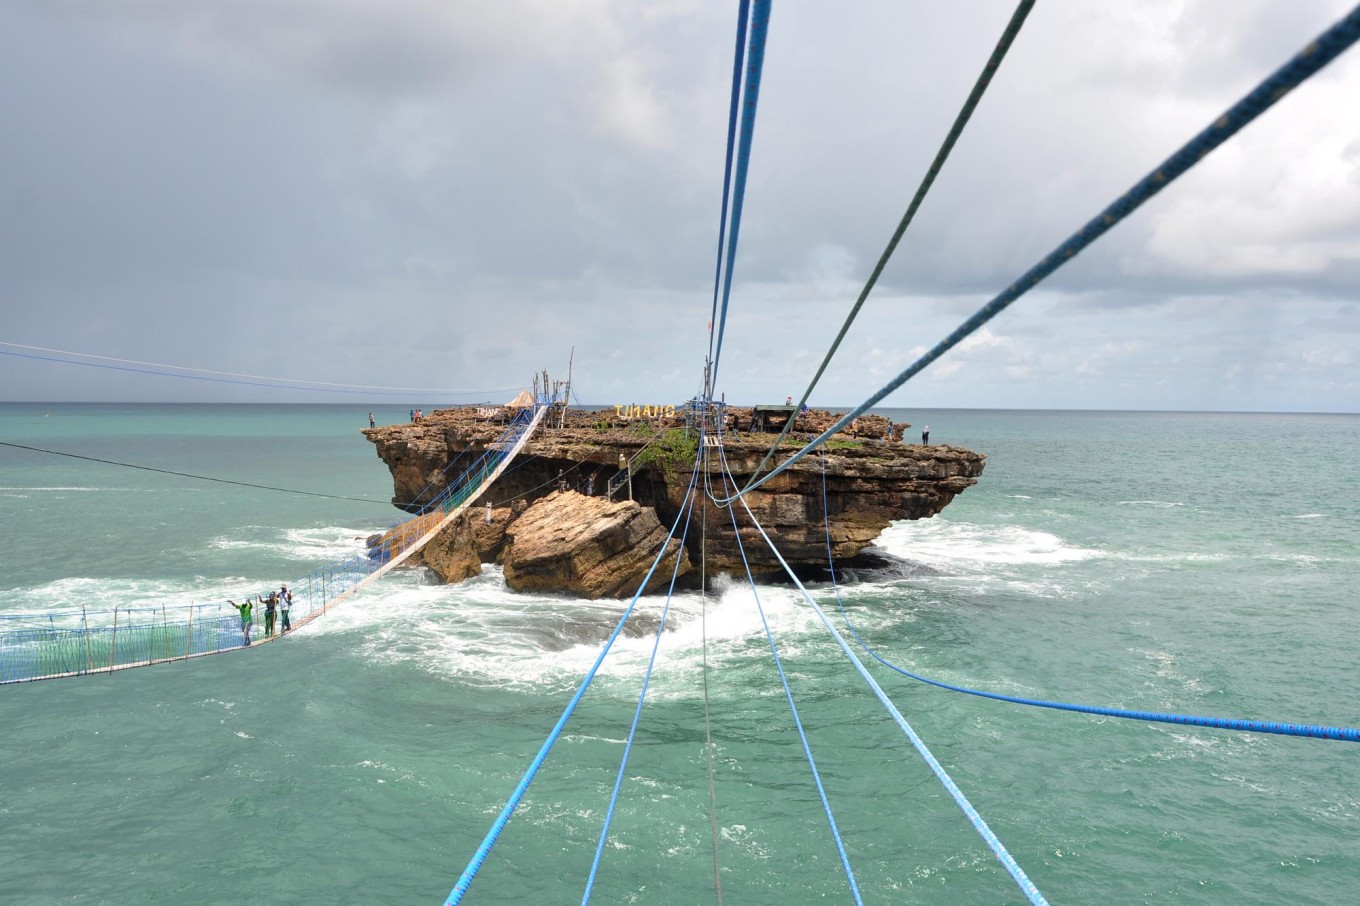 Some tourists prefer to cross the strait to Timang islet by using a hanging bridge. The bridge is made of 500 wooden planks lined up along 100 meters. JP/Magnus Hendratmo